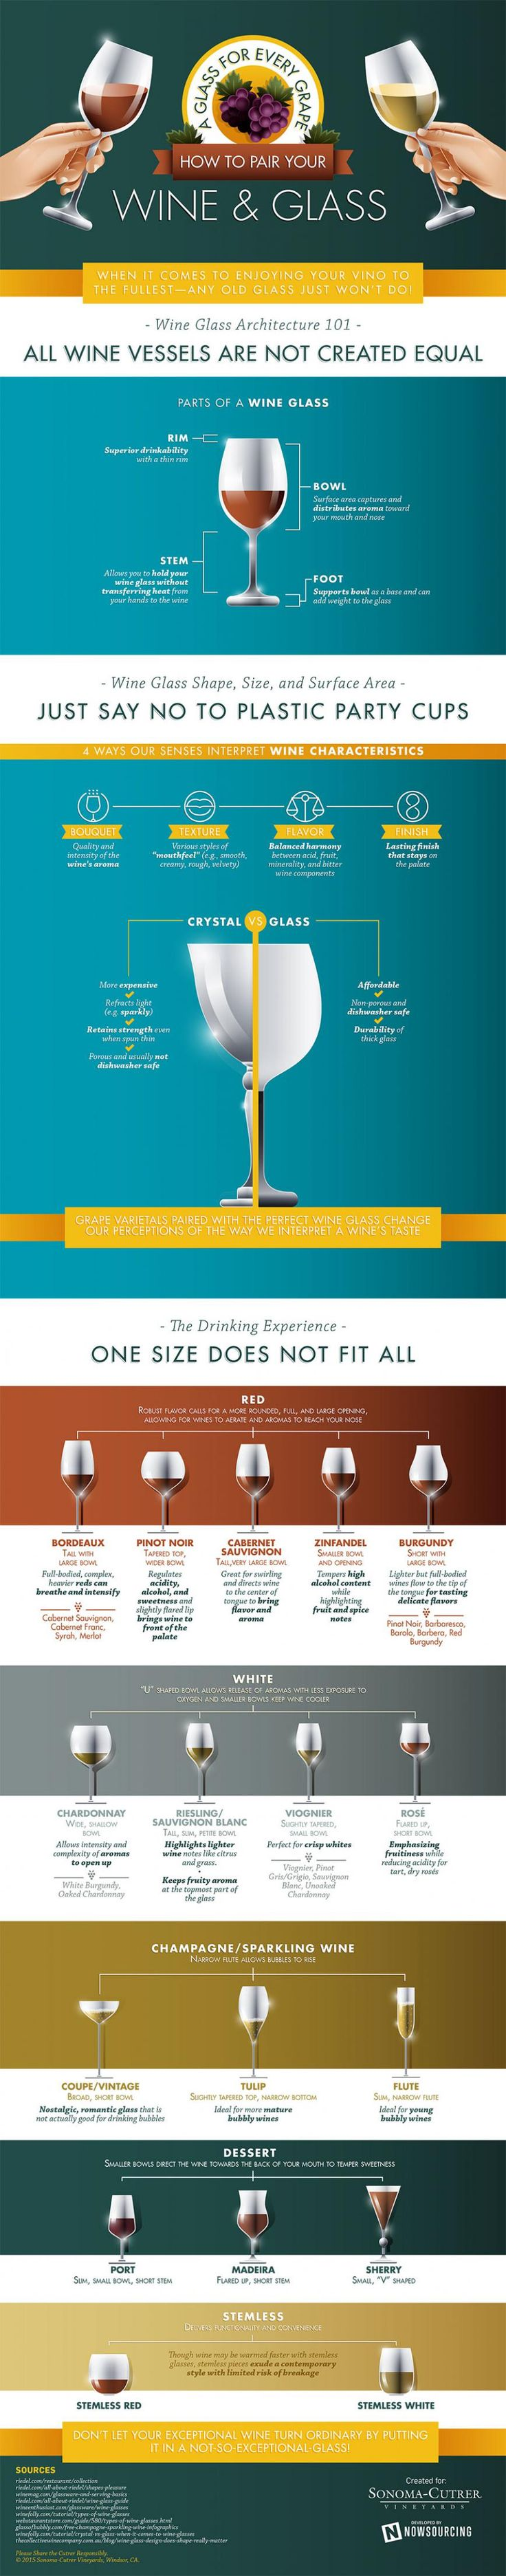 How to Pair Your Wine and Glass #infographic